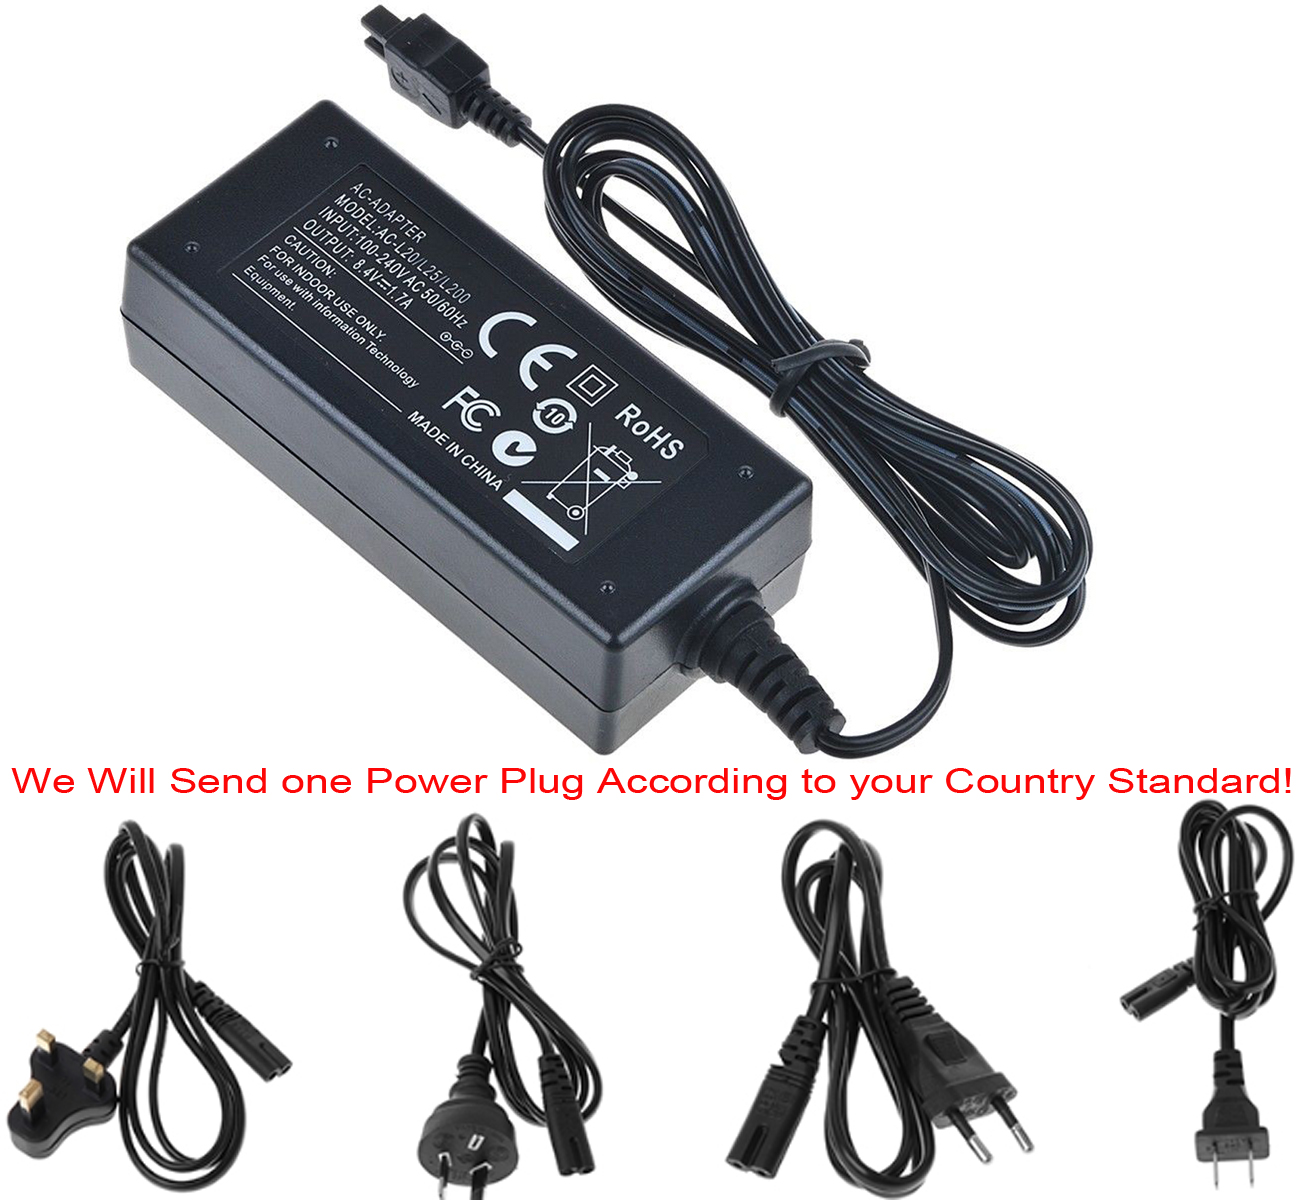 DCR-HC42 AC Power Adapter Charger for Sony DCR-HC40 DCR-HC43 DCR-HC44 Handycam Camcorder